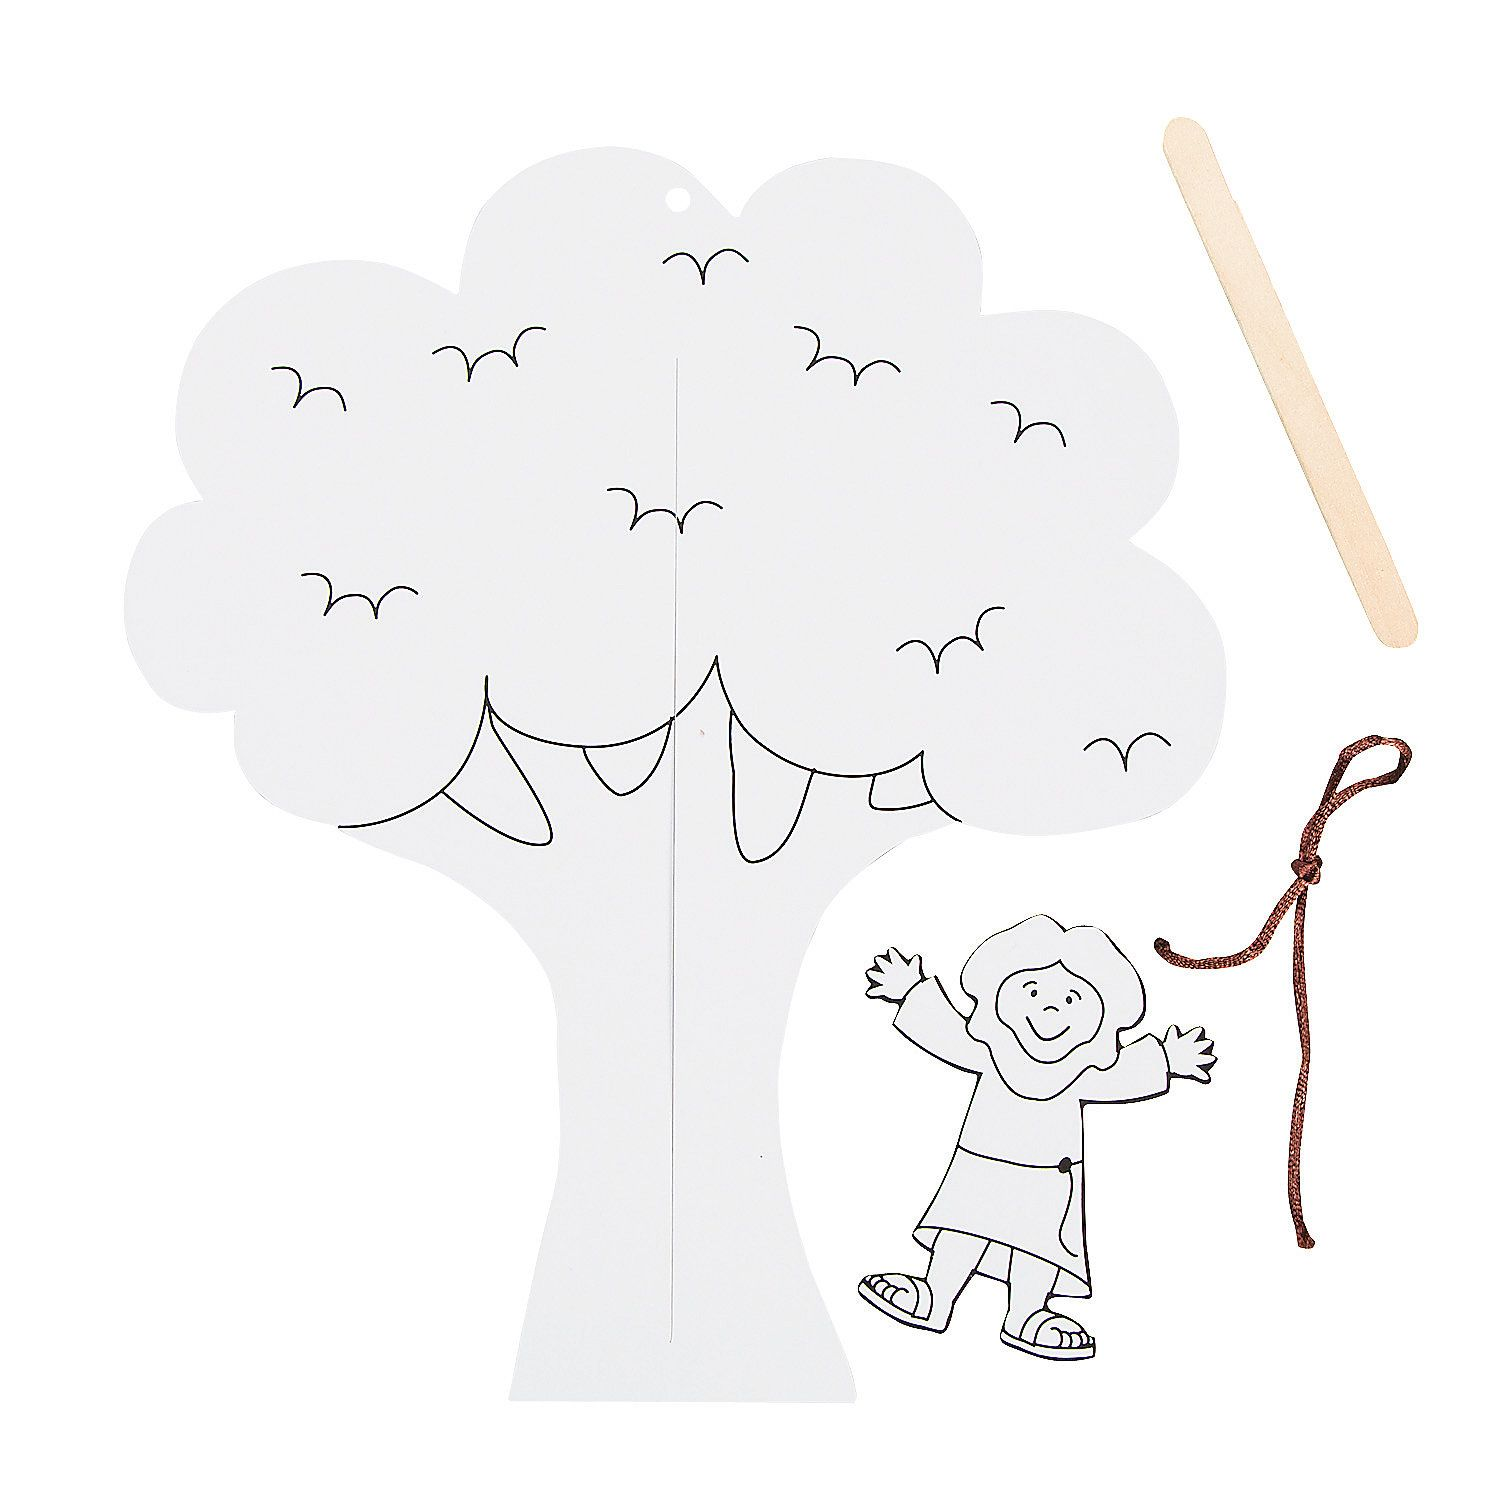 Zacchaeus Puppet Template Printable - completeseven